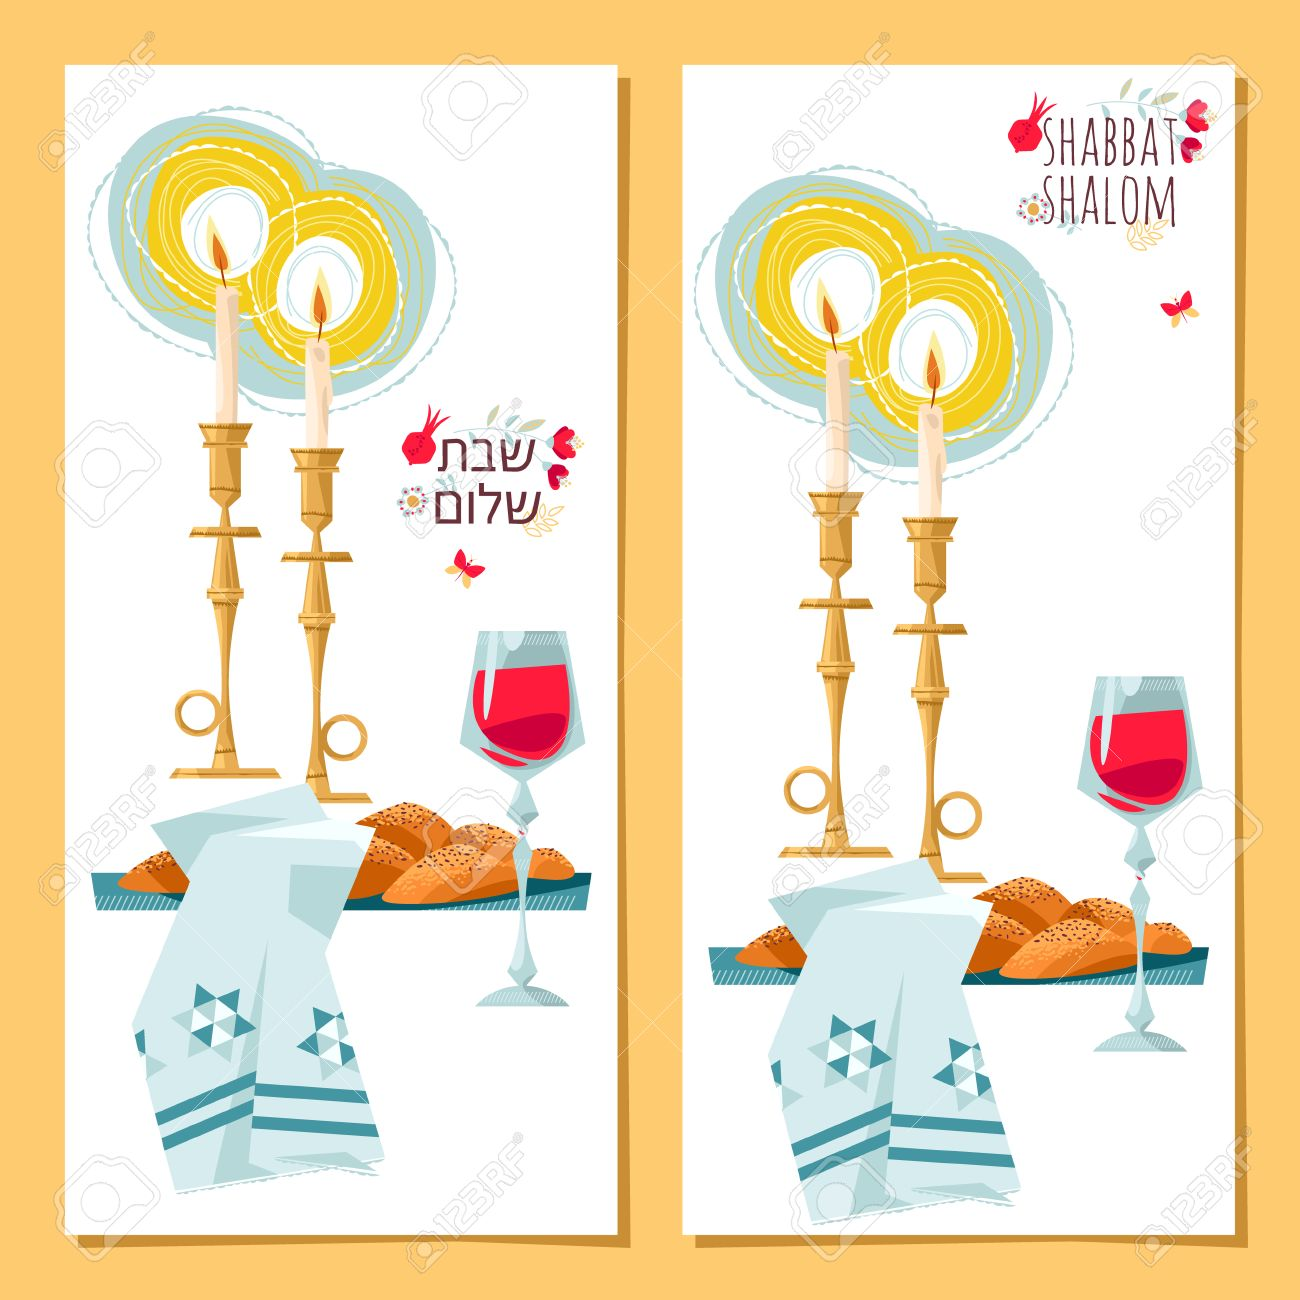 2 greeting cards shabbat shalom candles kiddush cup and challah 2 greeting cards shabbat shalom candles kiddush cup and challah jewish holiday m4hsunfo Image collections